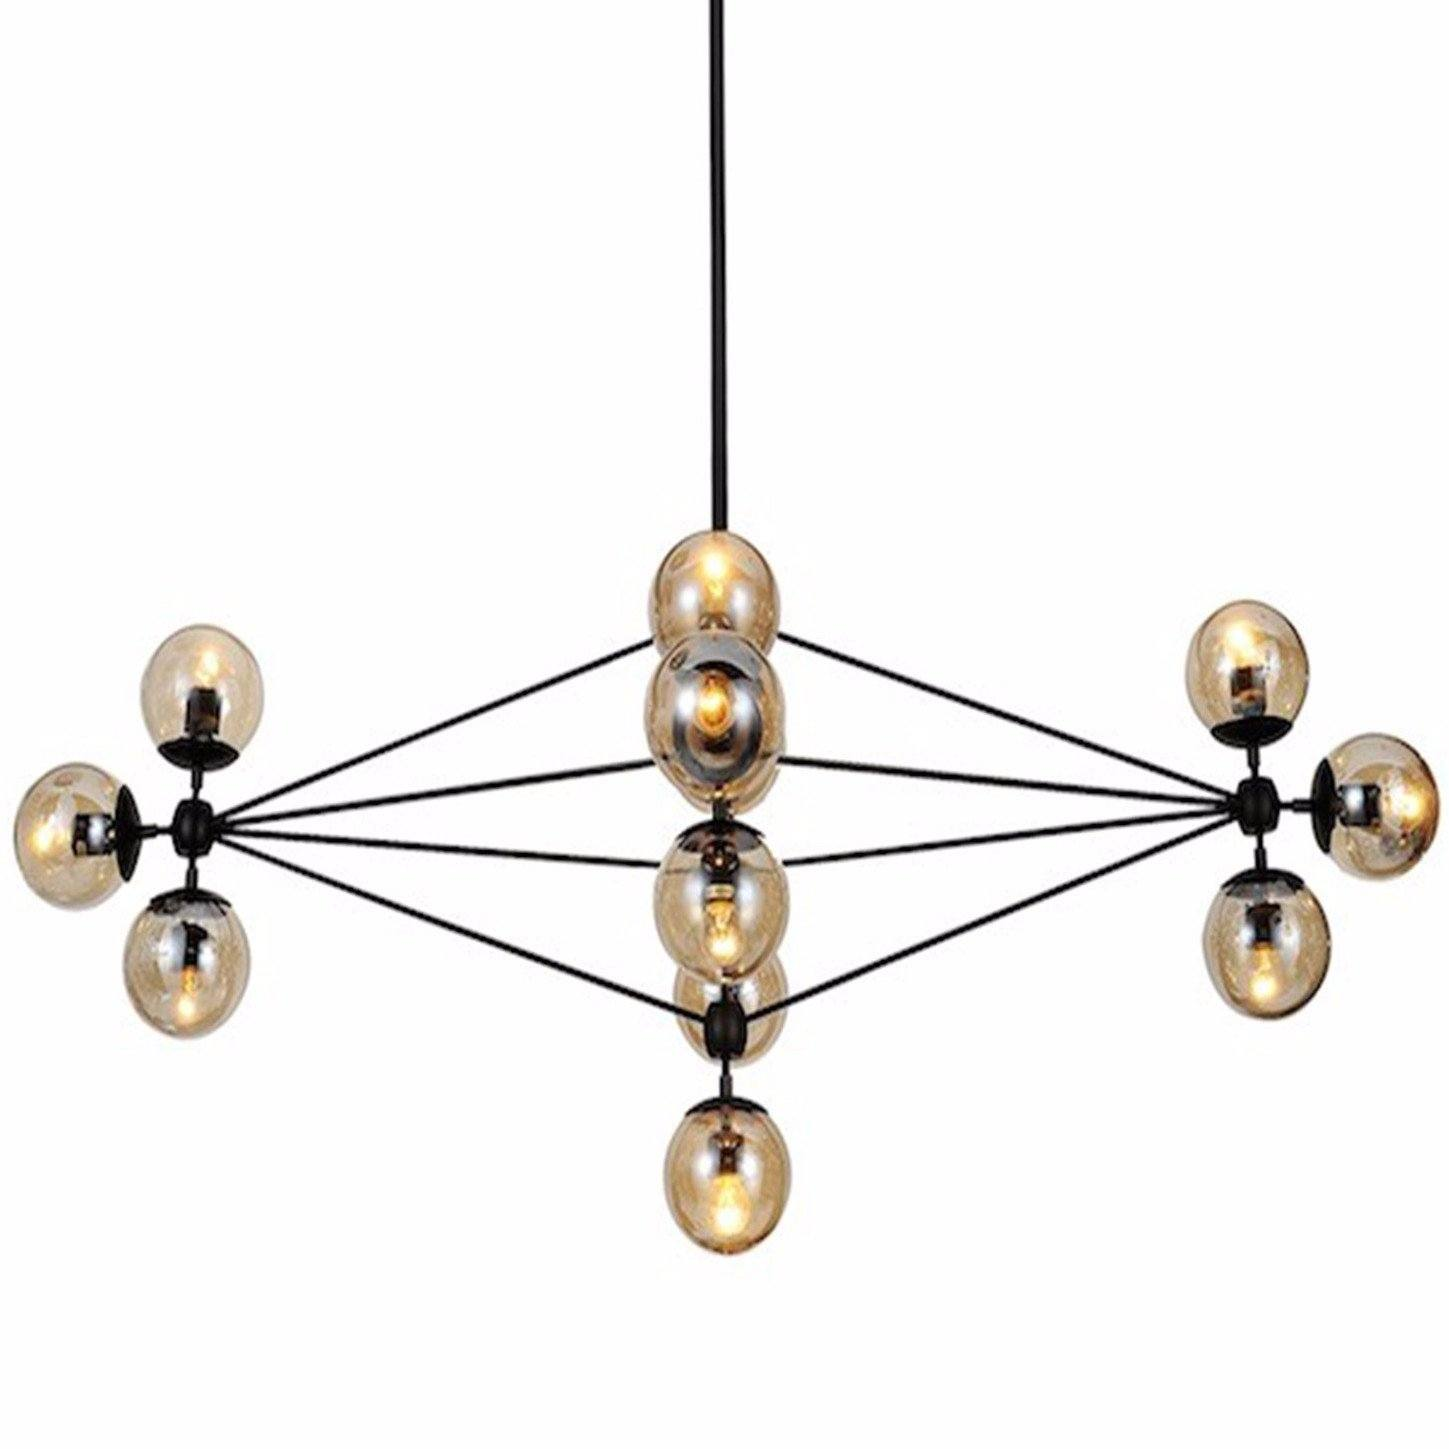 Jason Miller Style Modo Chandelier 21 Bulbs (Champagne Glass / Black) - Nathan Rhodes Design